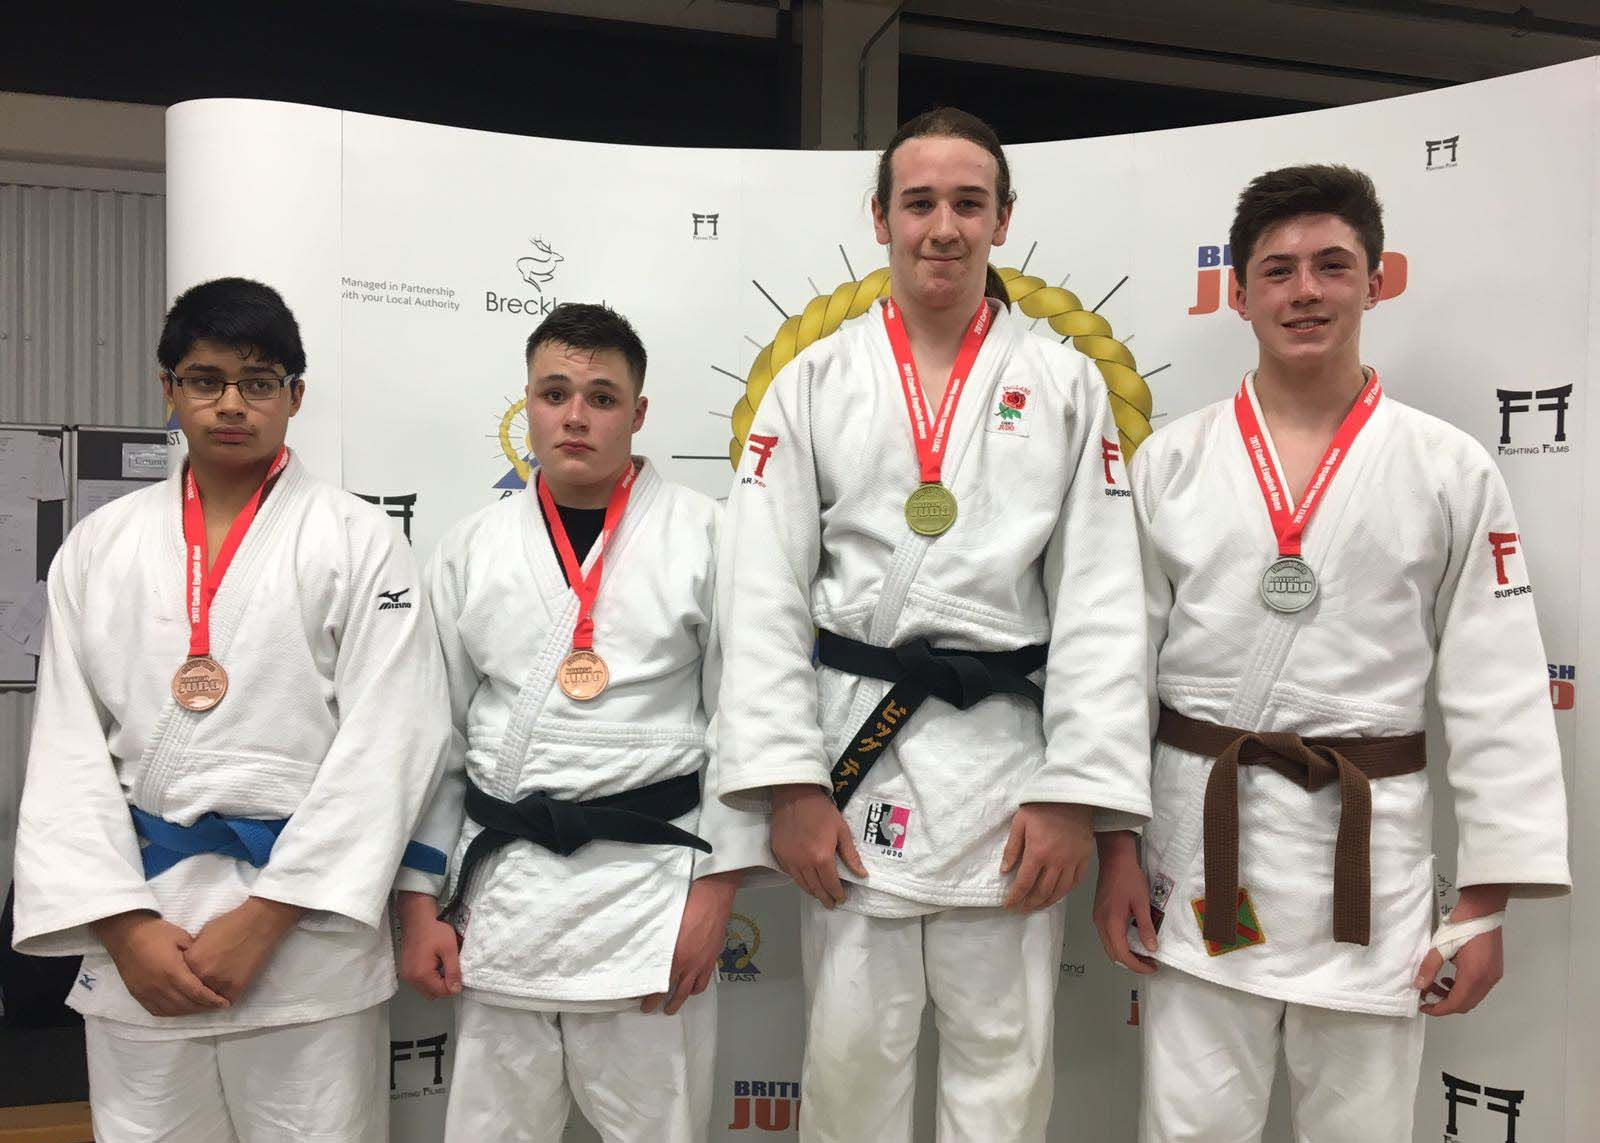 Hertfordshire's Teenage Heavyweight to represent England's Judo Championship in 2017